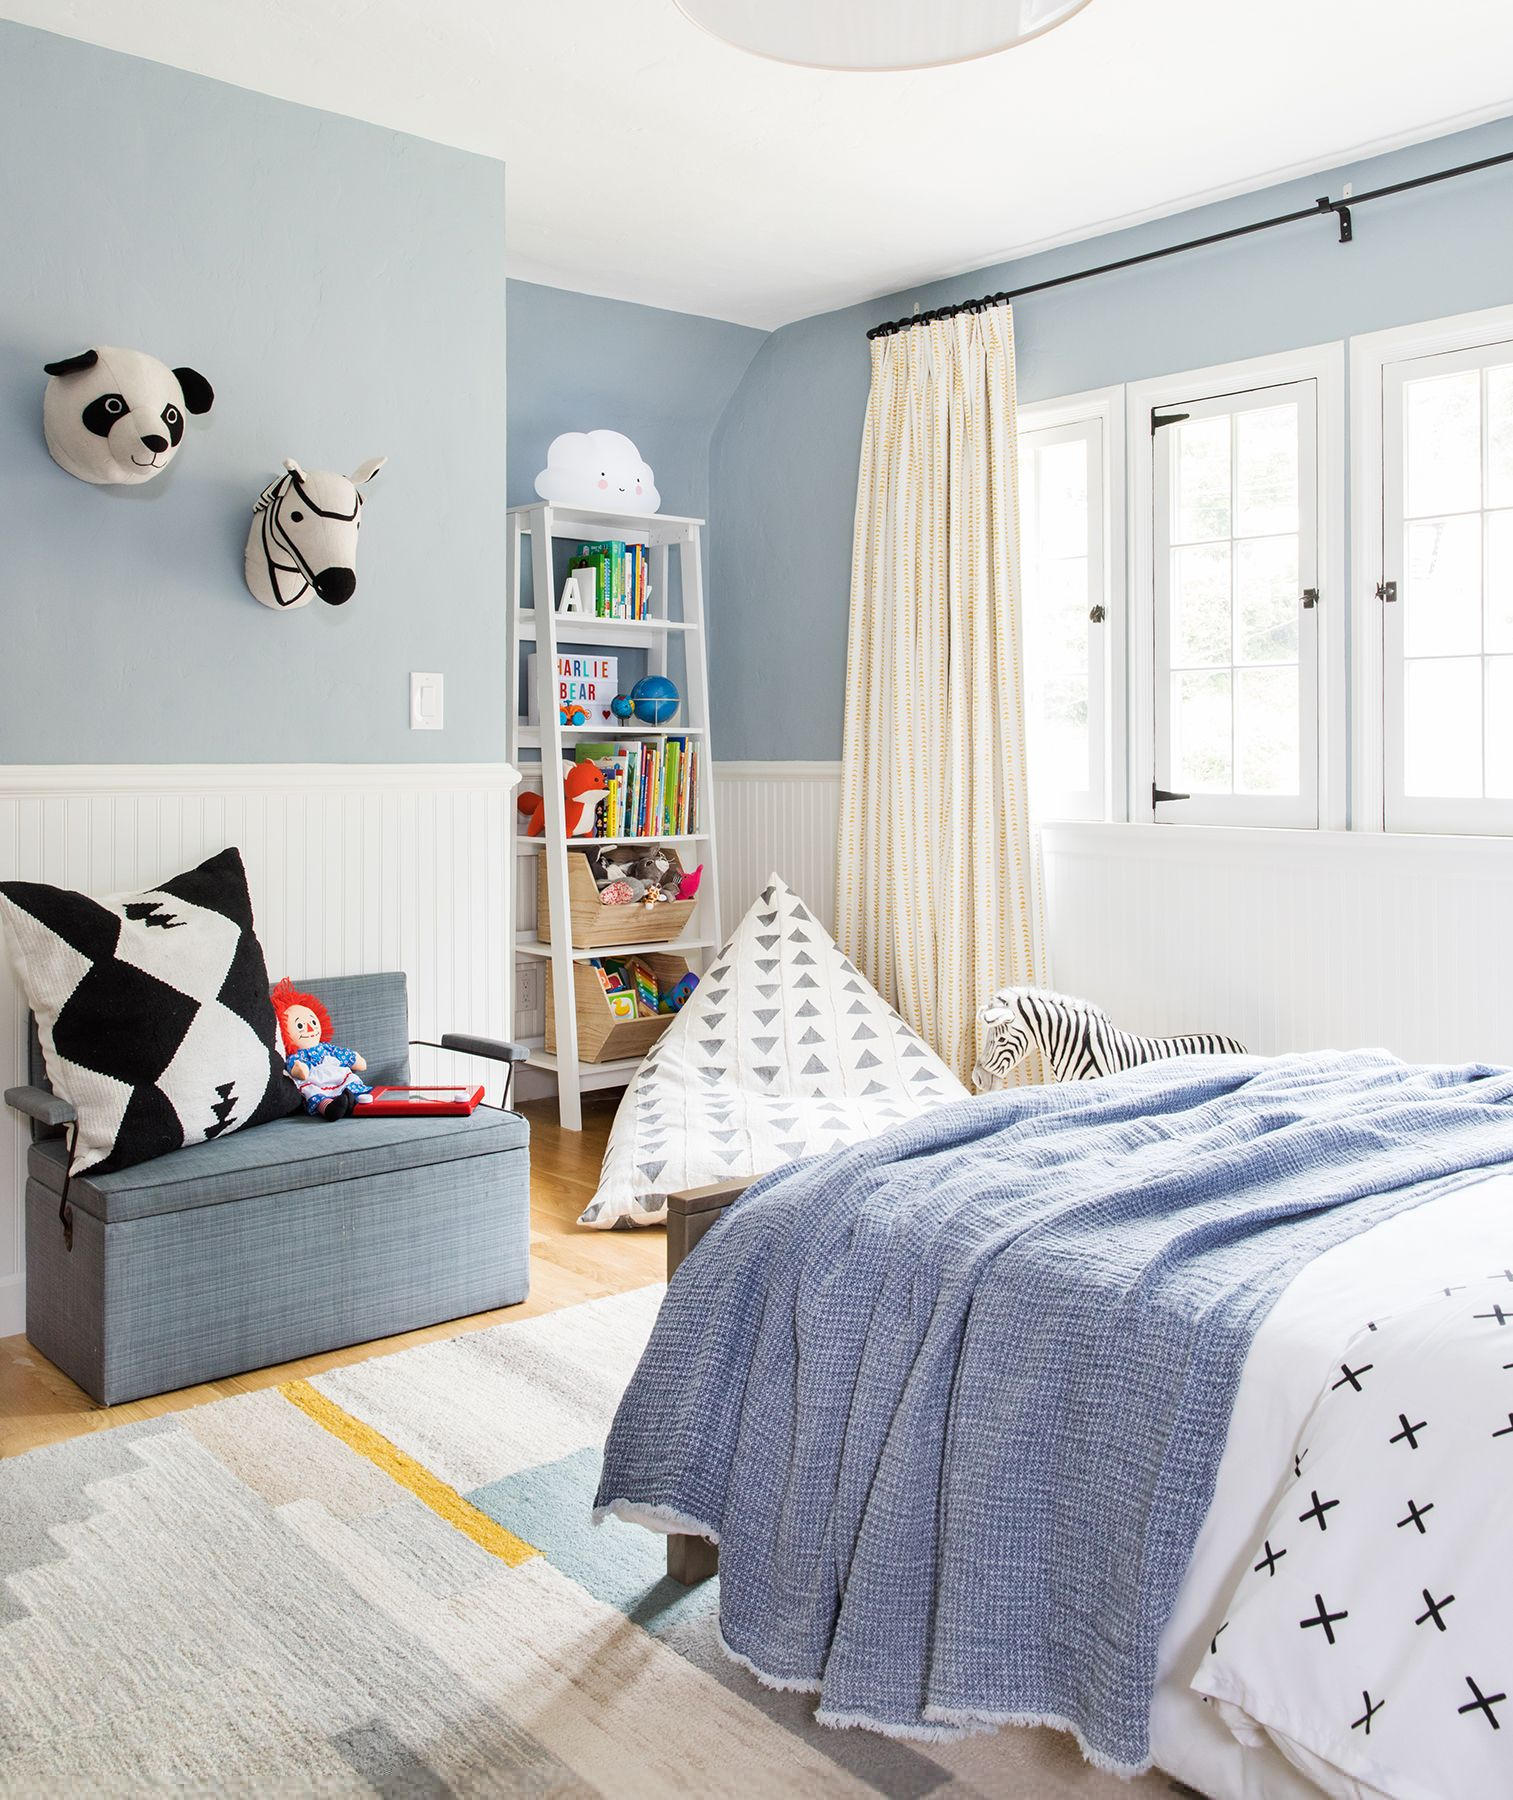 23 Decorating Tricks For Your Bedroom Real Simple Beach House Style Bedroom Decor Decoration Cuisine Decorati Industrial Decor Bedroom Decor Bedroom Decor Real simple bedroom ideas